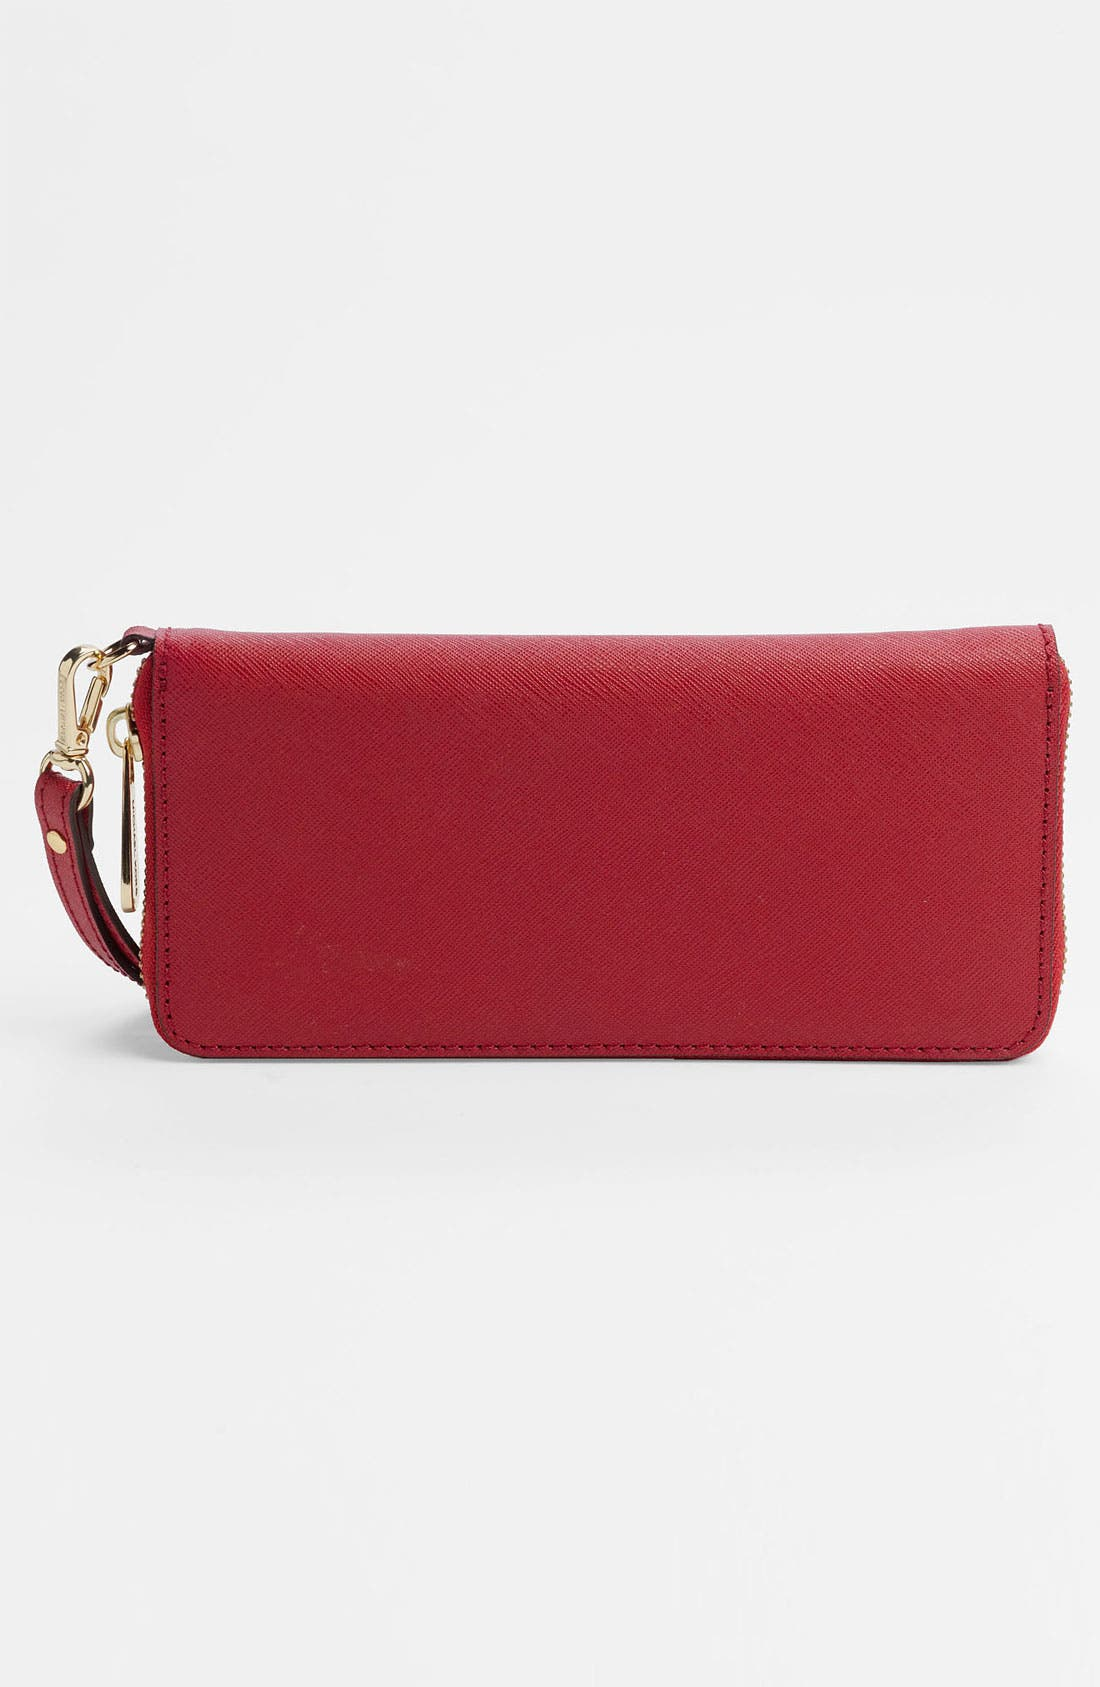 Alternate Image 3  - MICHAEL Michael Kors 'Jet Set' Continental Phone Wallet